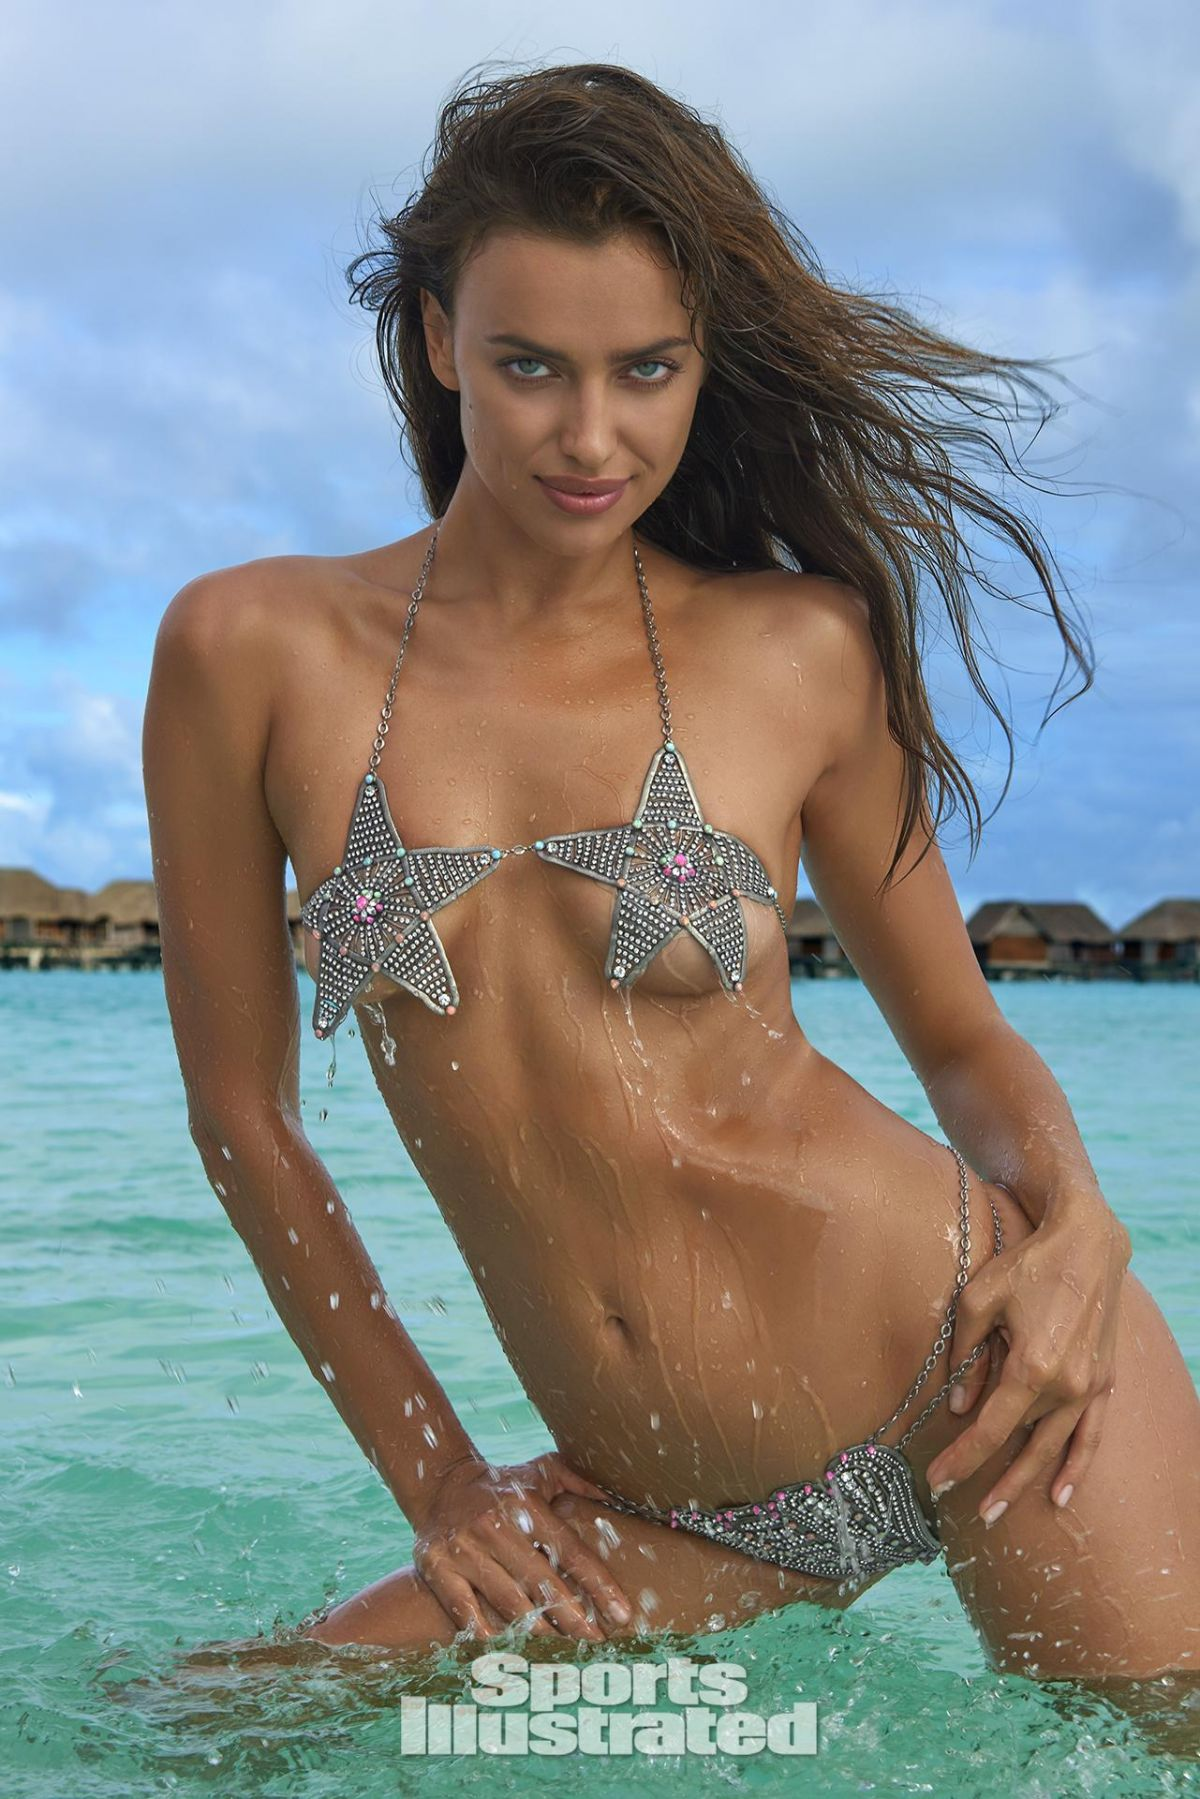 Irina Shayk Sports Illustrated Swimsuit Issue 2016 ...